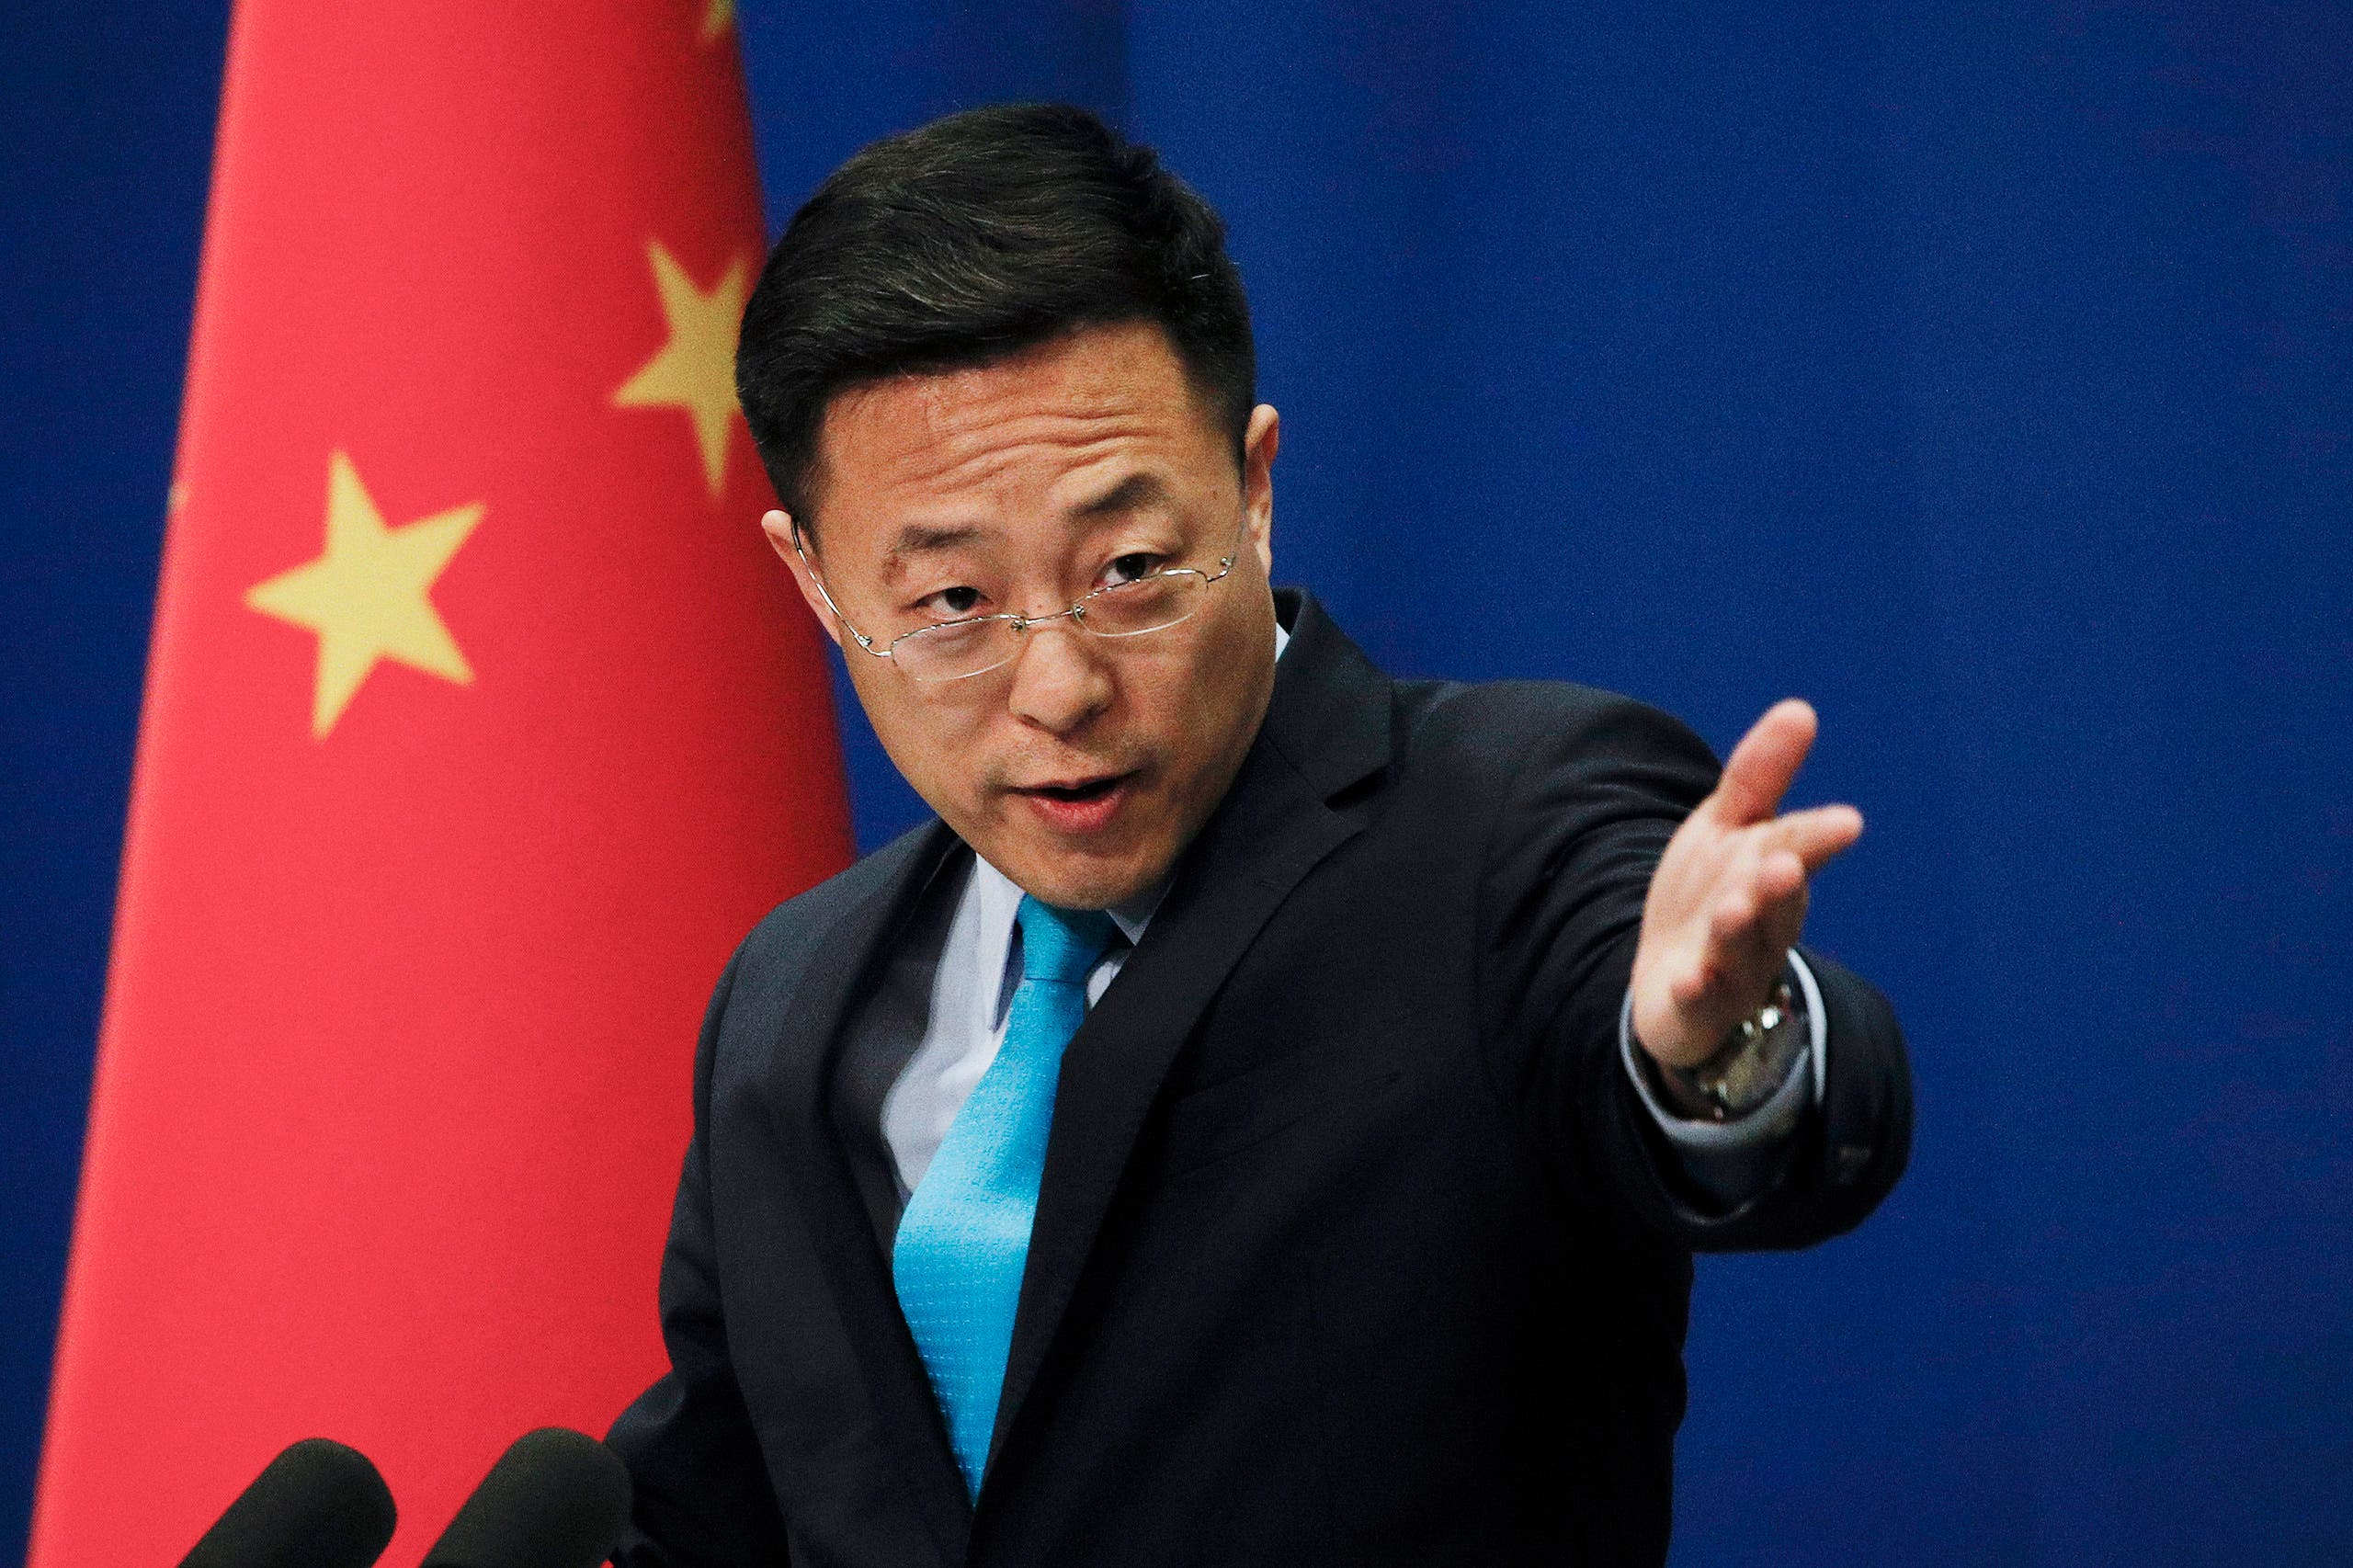 Chinese Foreign Ministry spokesman Zhao Lijian speaks during a daily briefing at the Ministry of Foreign Affairs office in Beijing on Feb. 24, 2020. (AP)